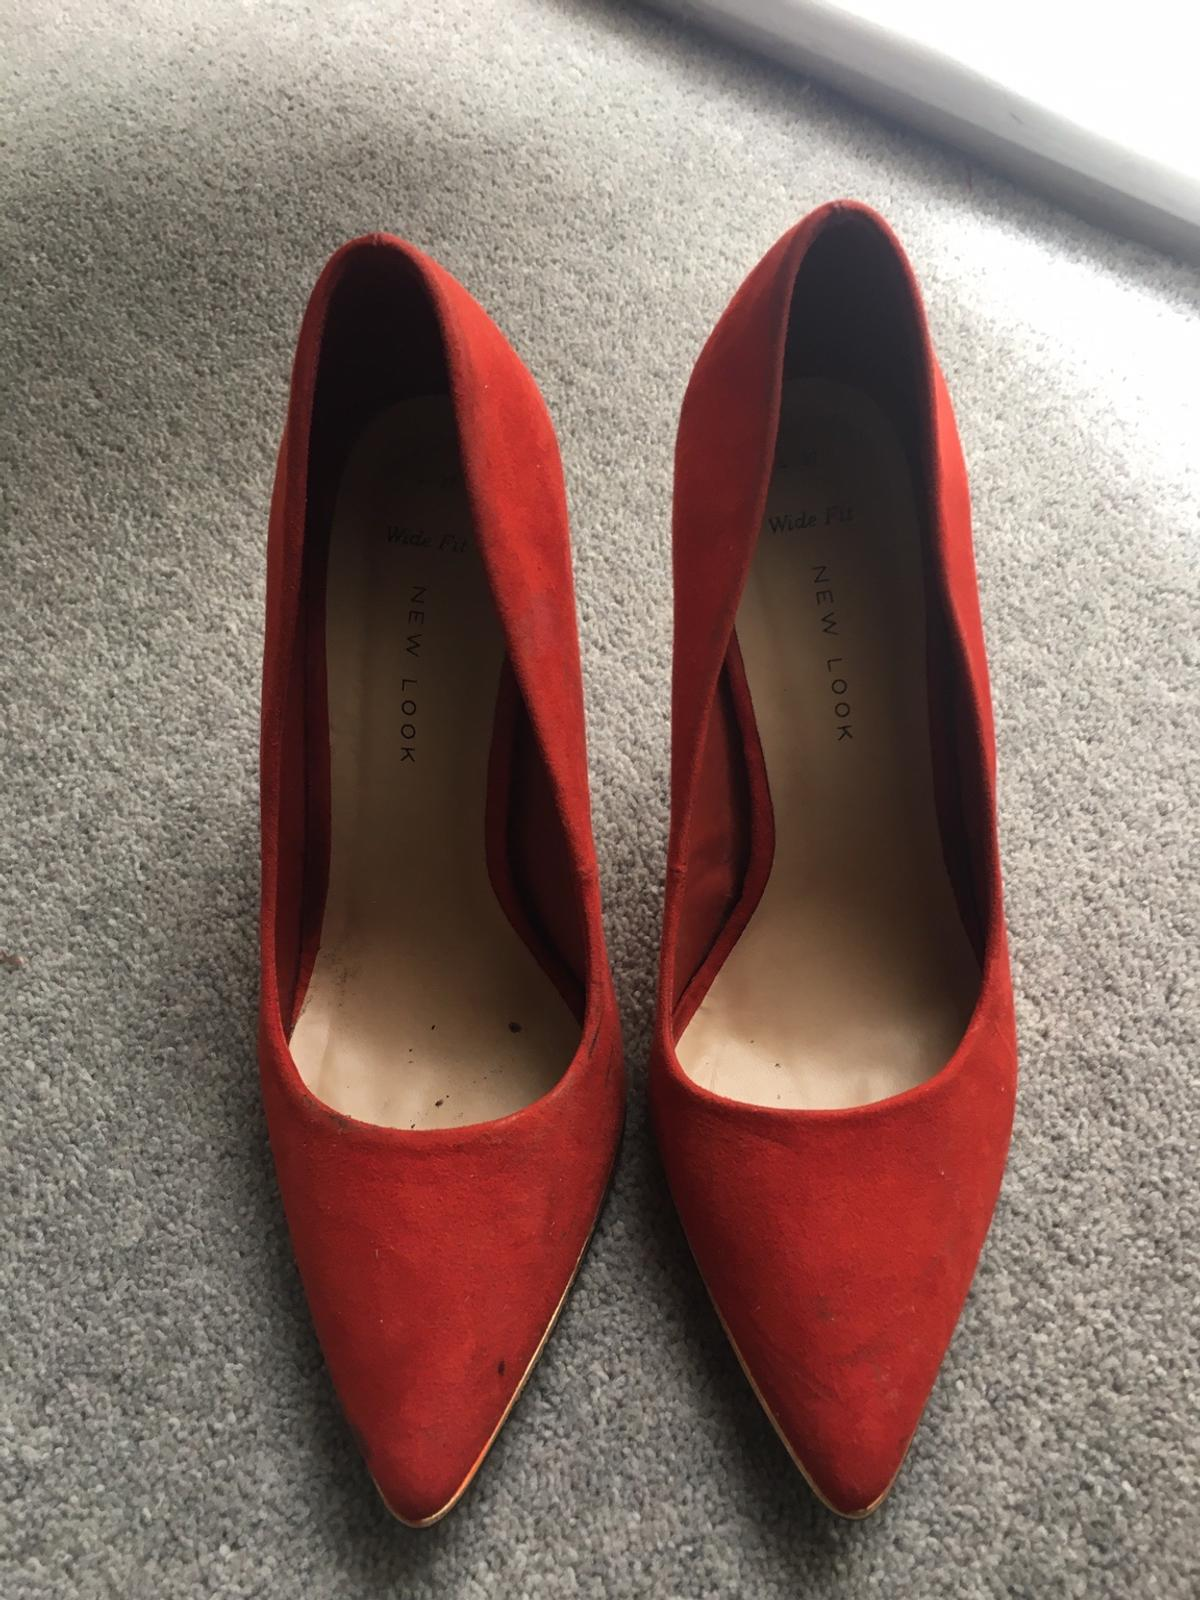 New look red high heels size 4 (37)